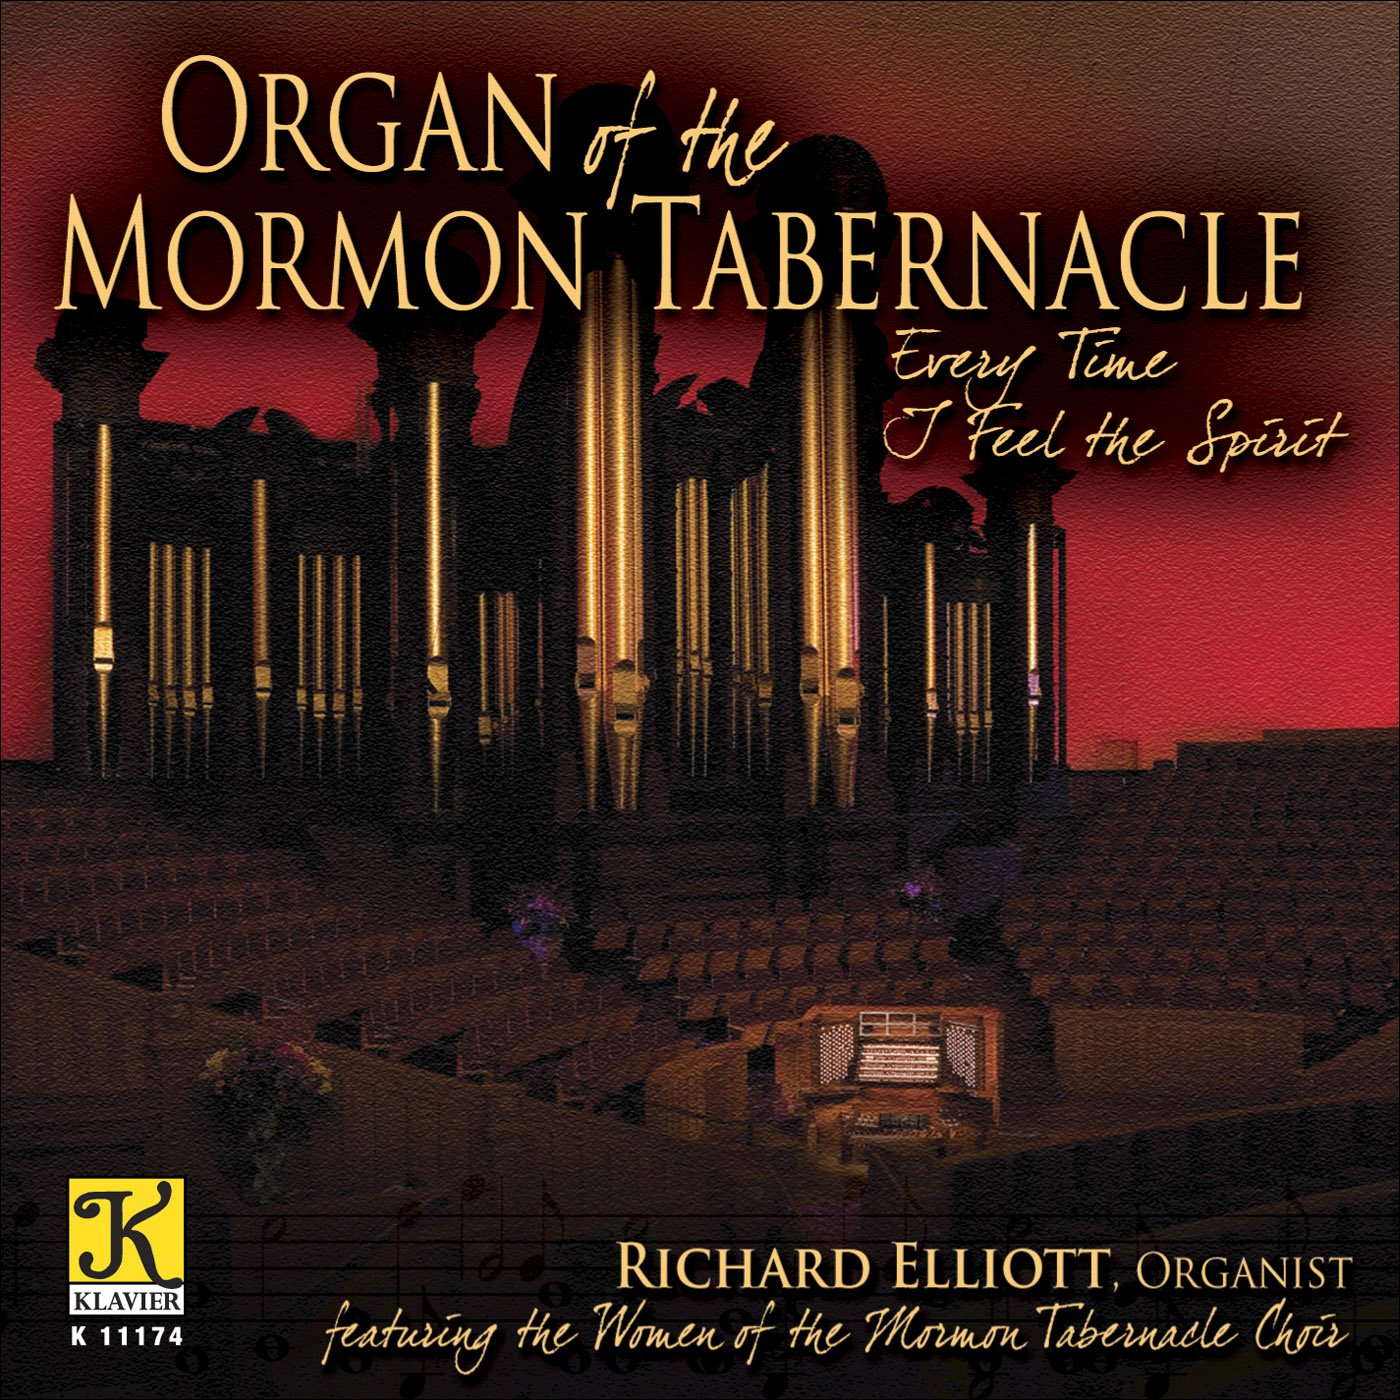 Every Time I Feel the Spirit: Organ of the Mormon Tabernacle by Klavier